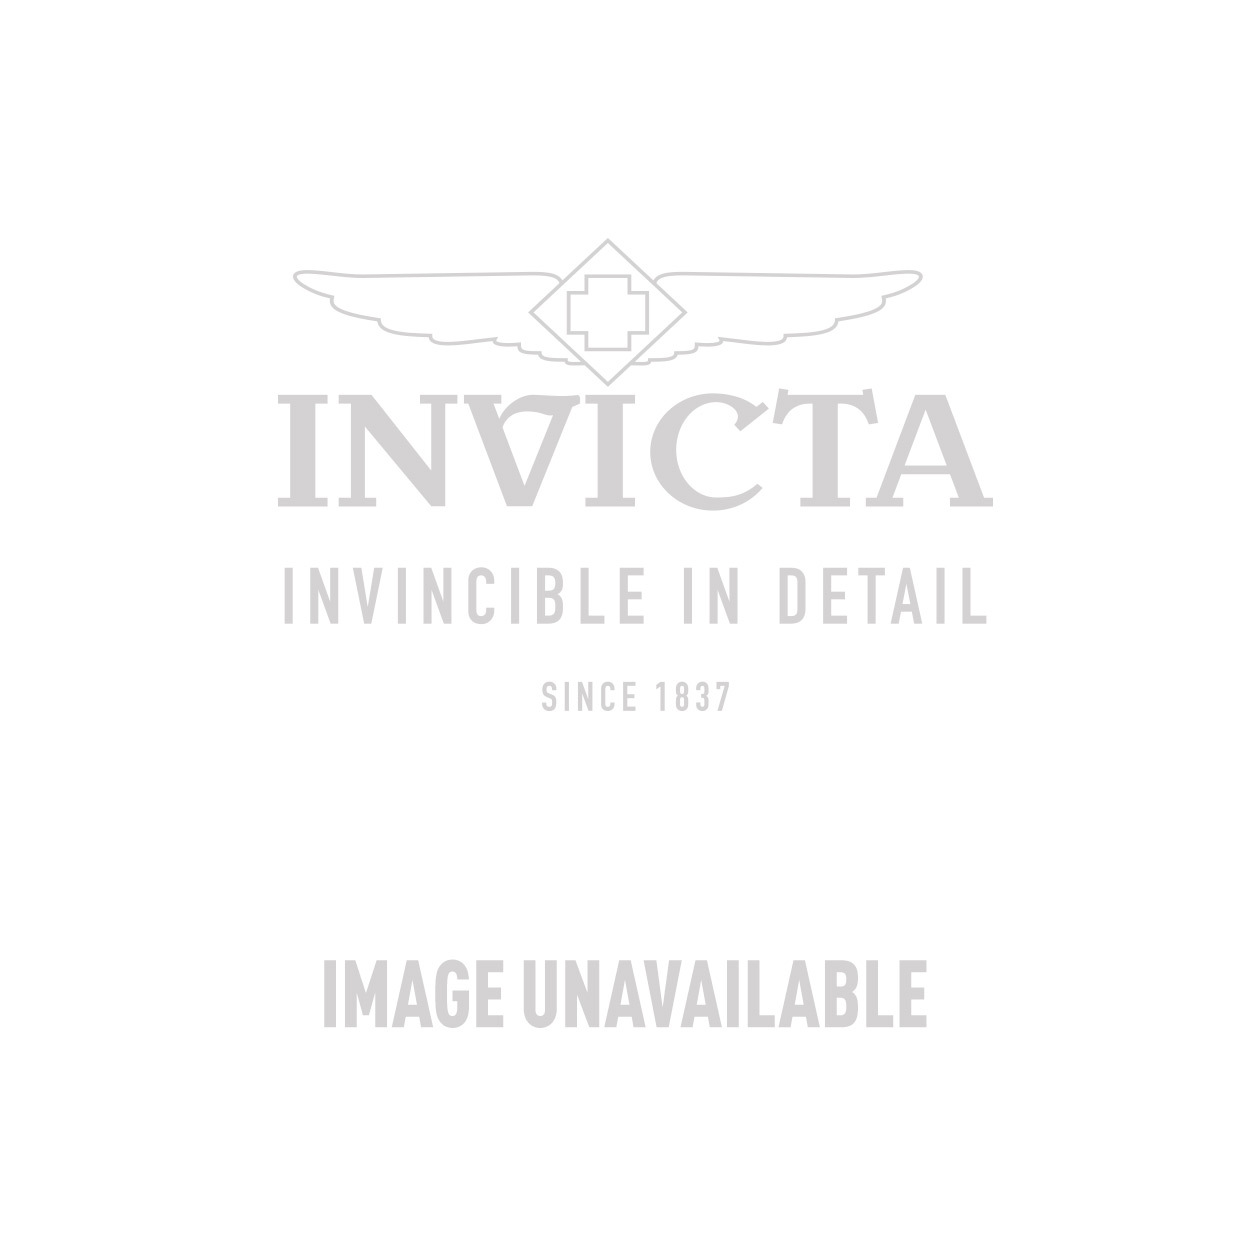 Invicta Pro Diver Swiss Movement Quartz Watch - Gold, Stainless Steel case with Steel, Gold tone Stainless Steel band - Model 17694